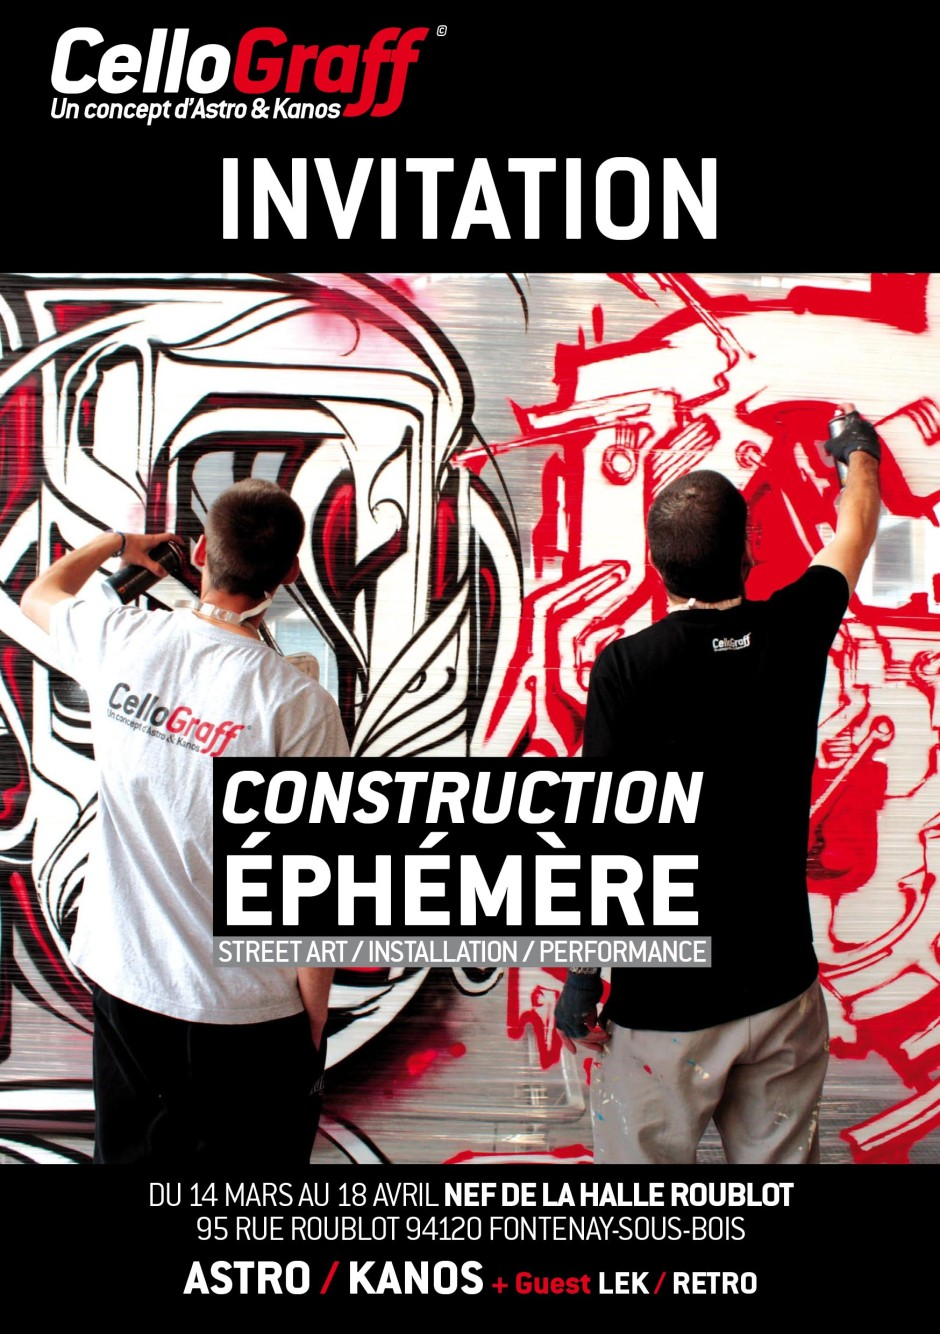 cellograff_fontenay_invitation1